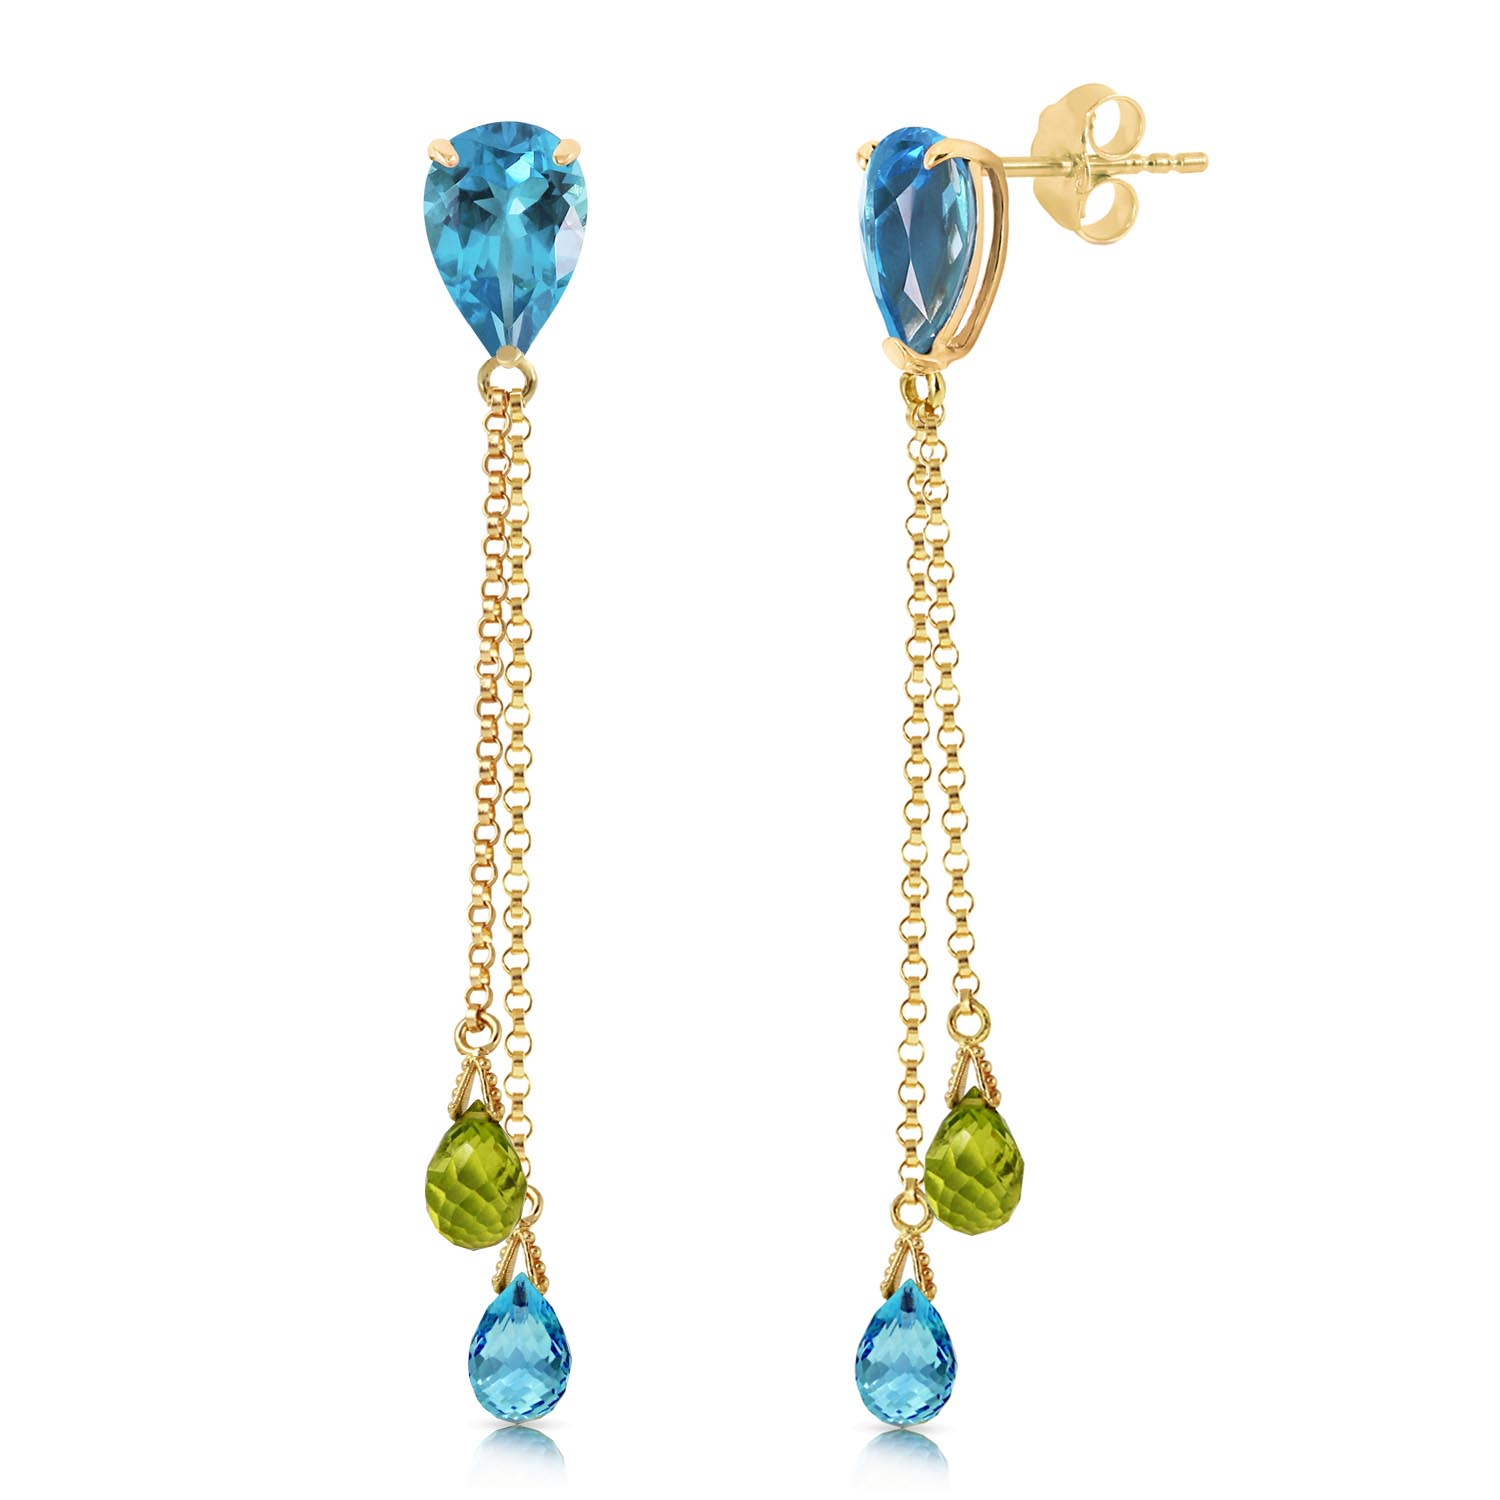 Blue Topaz and Peridot Droplet Earrings 7.5ctw in 9ct Gold